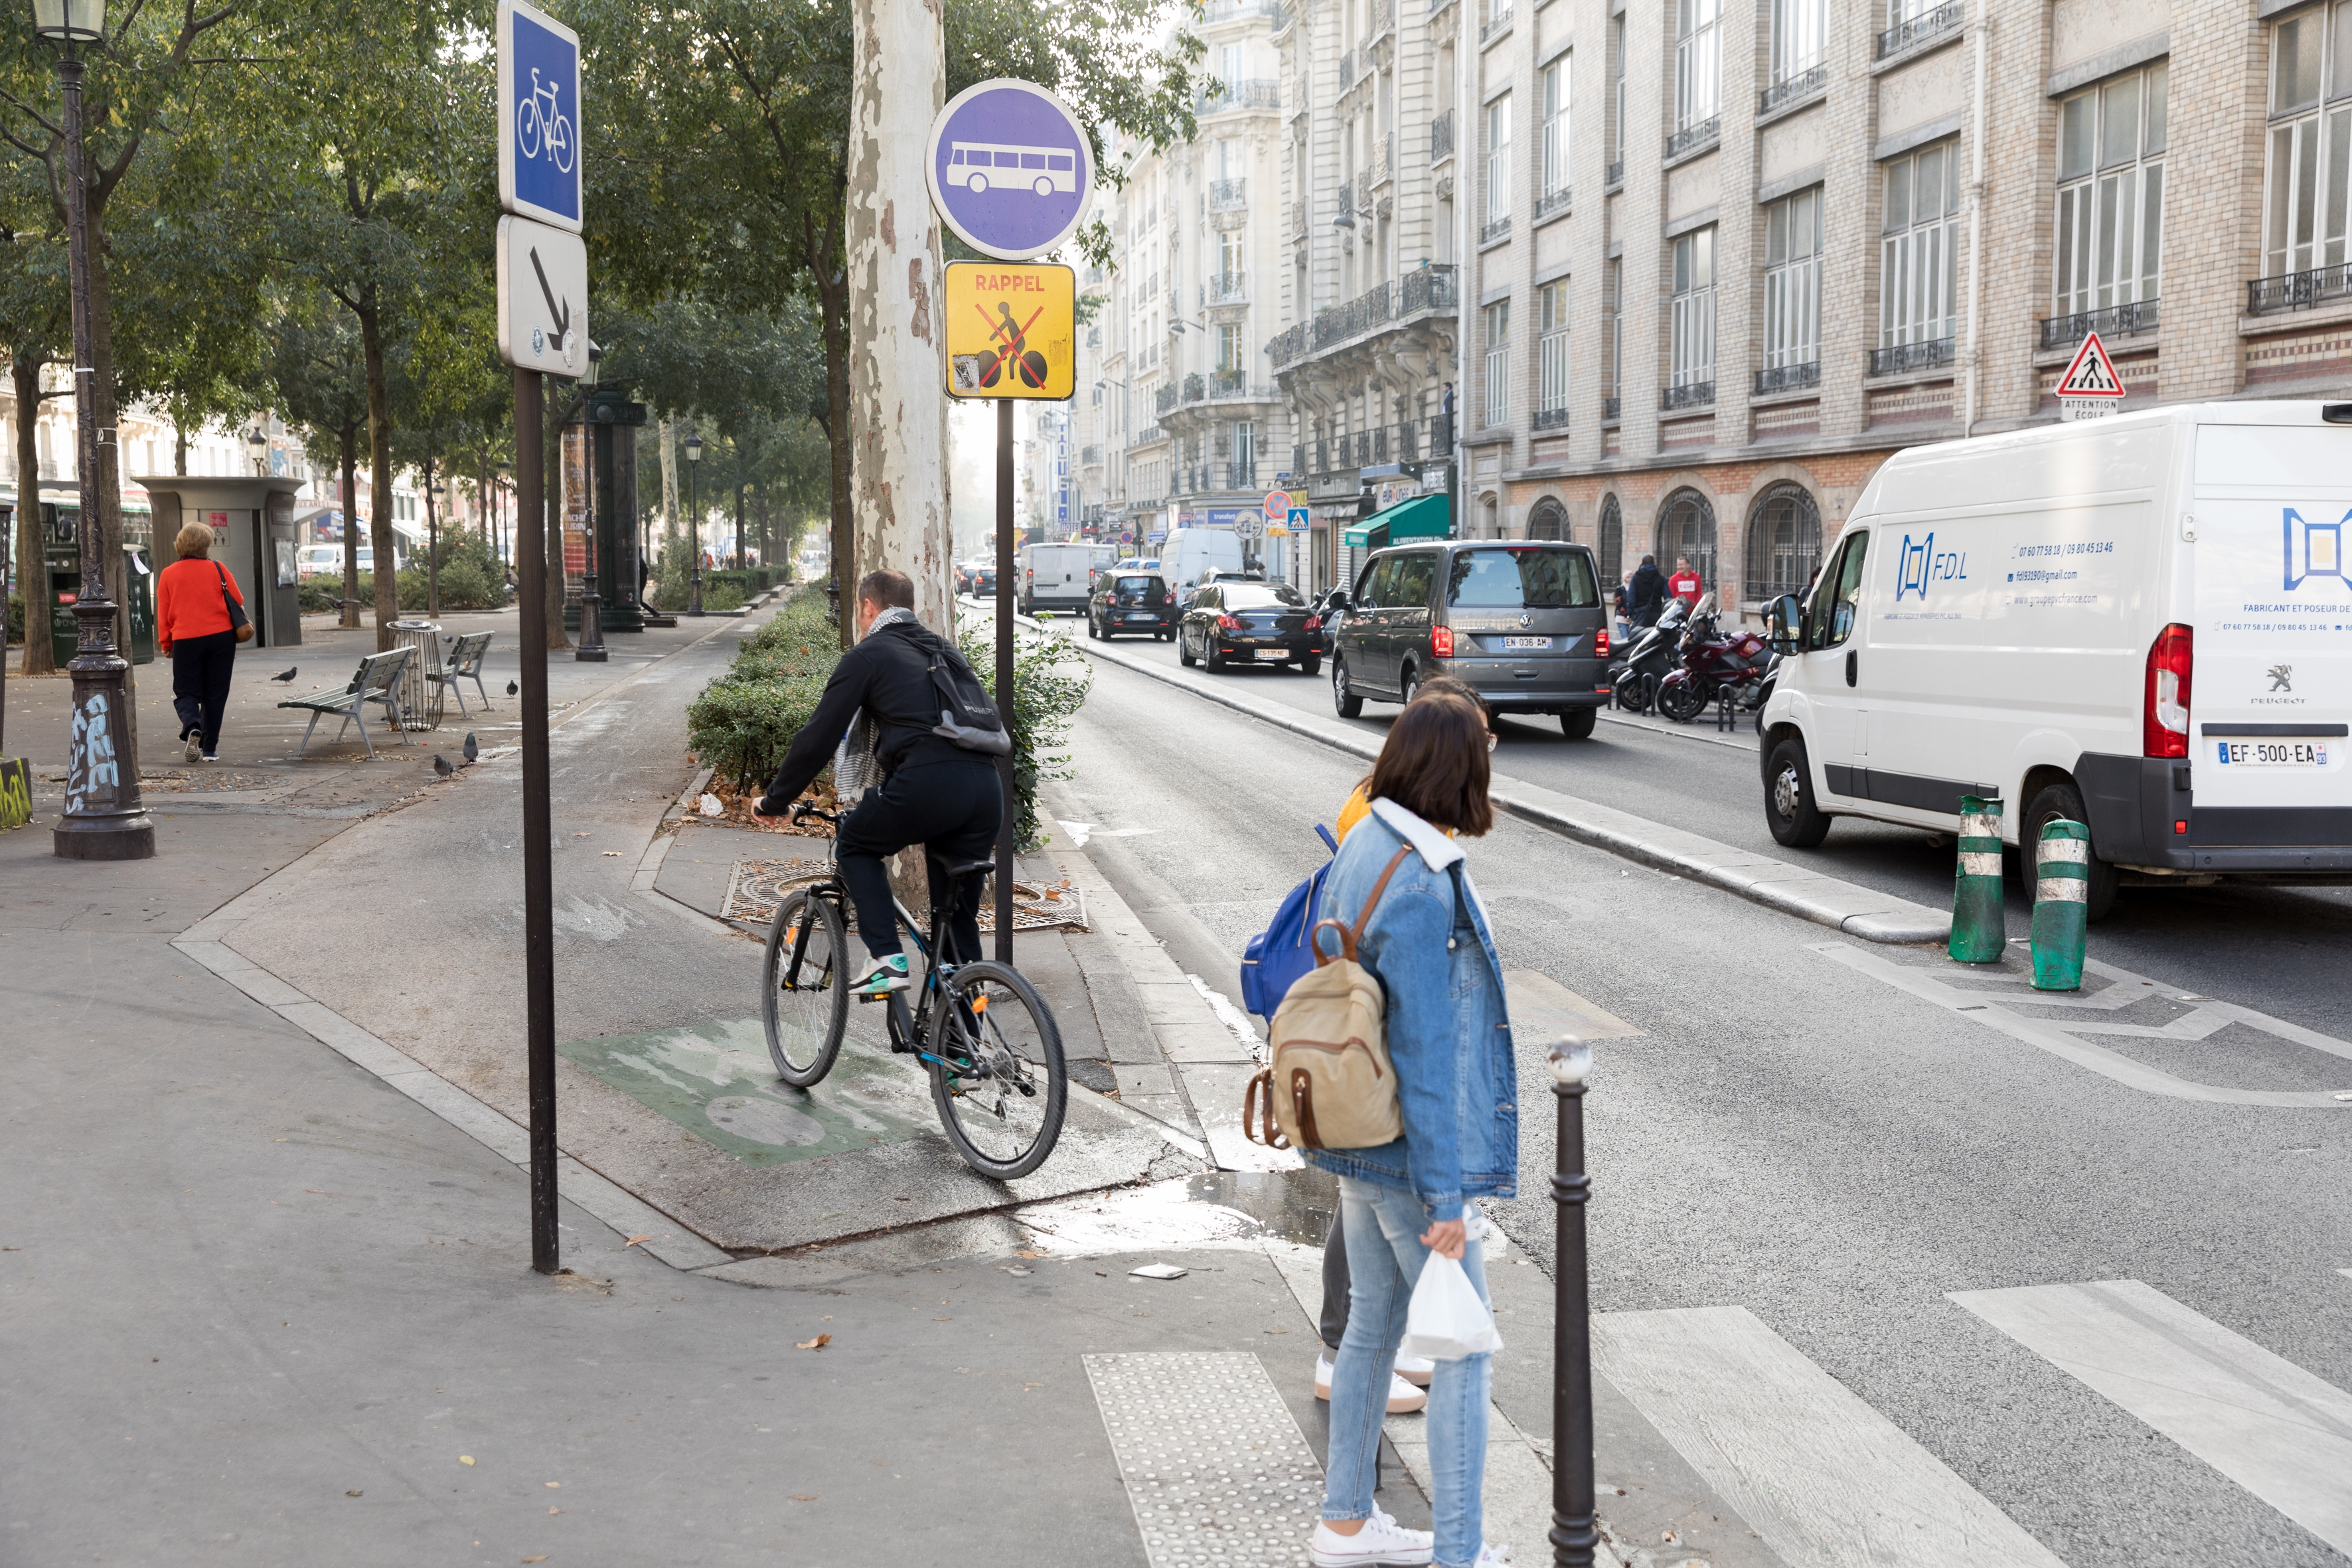 Separate cycle lane in Paris